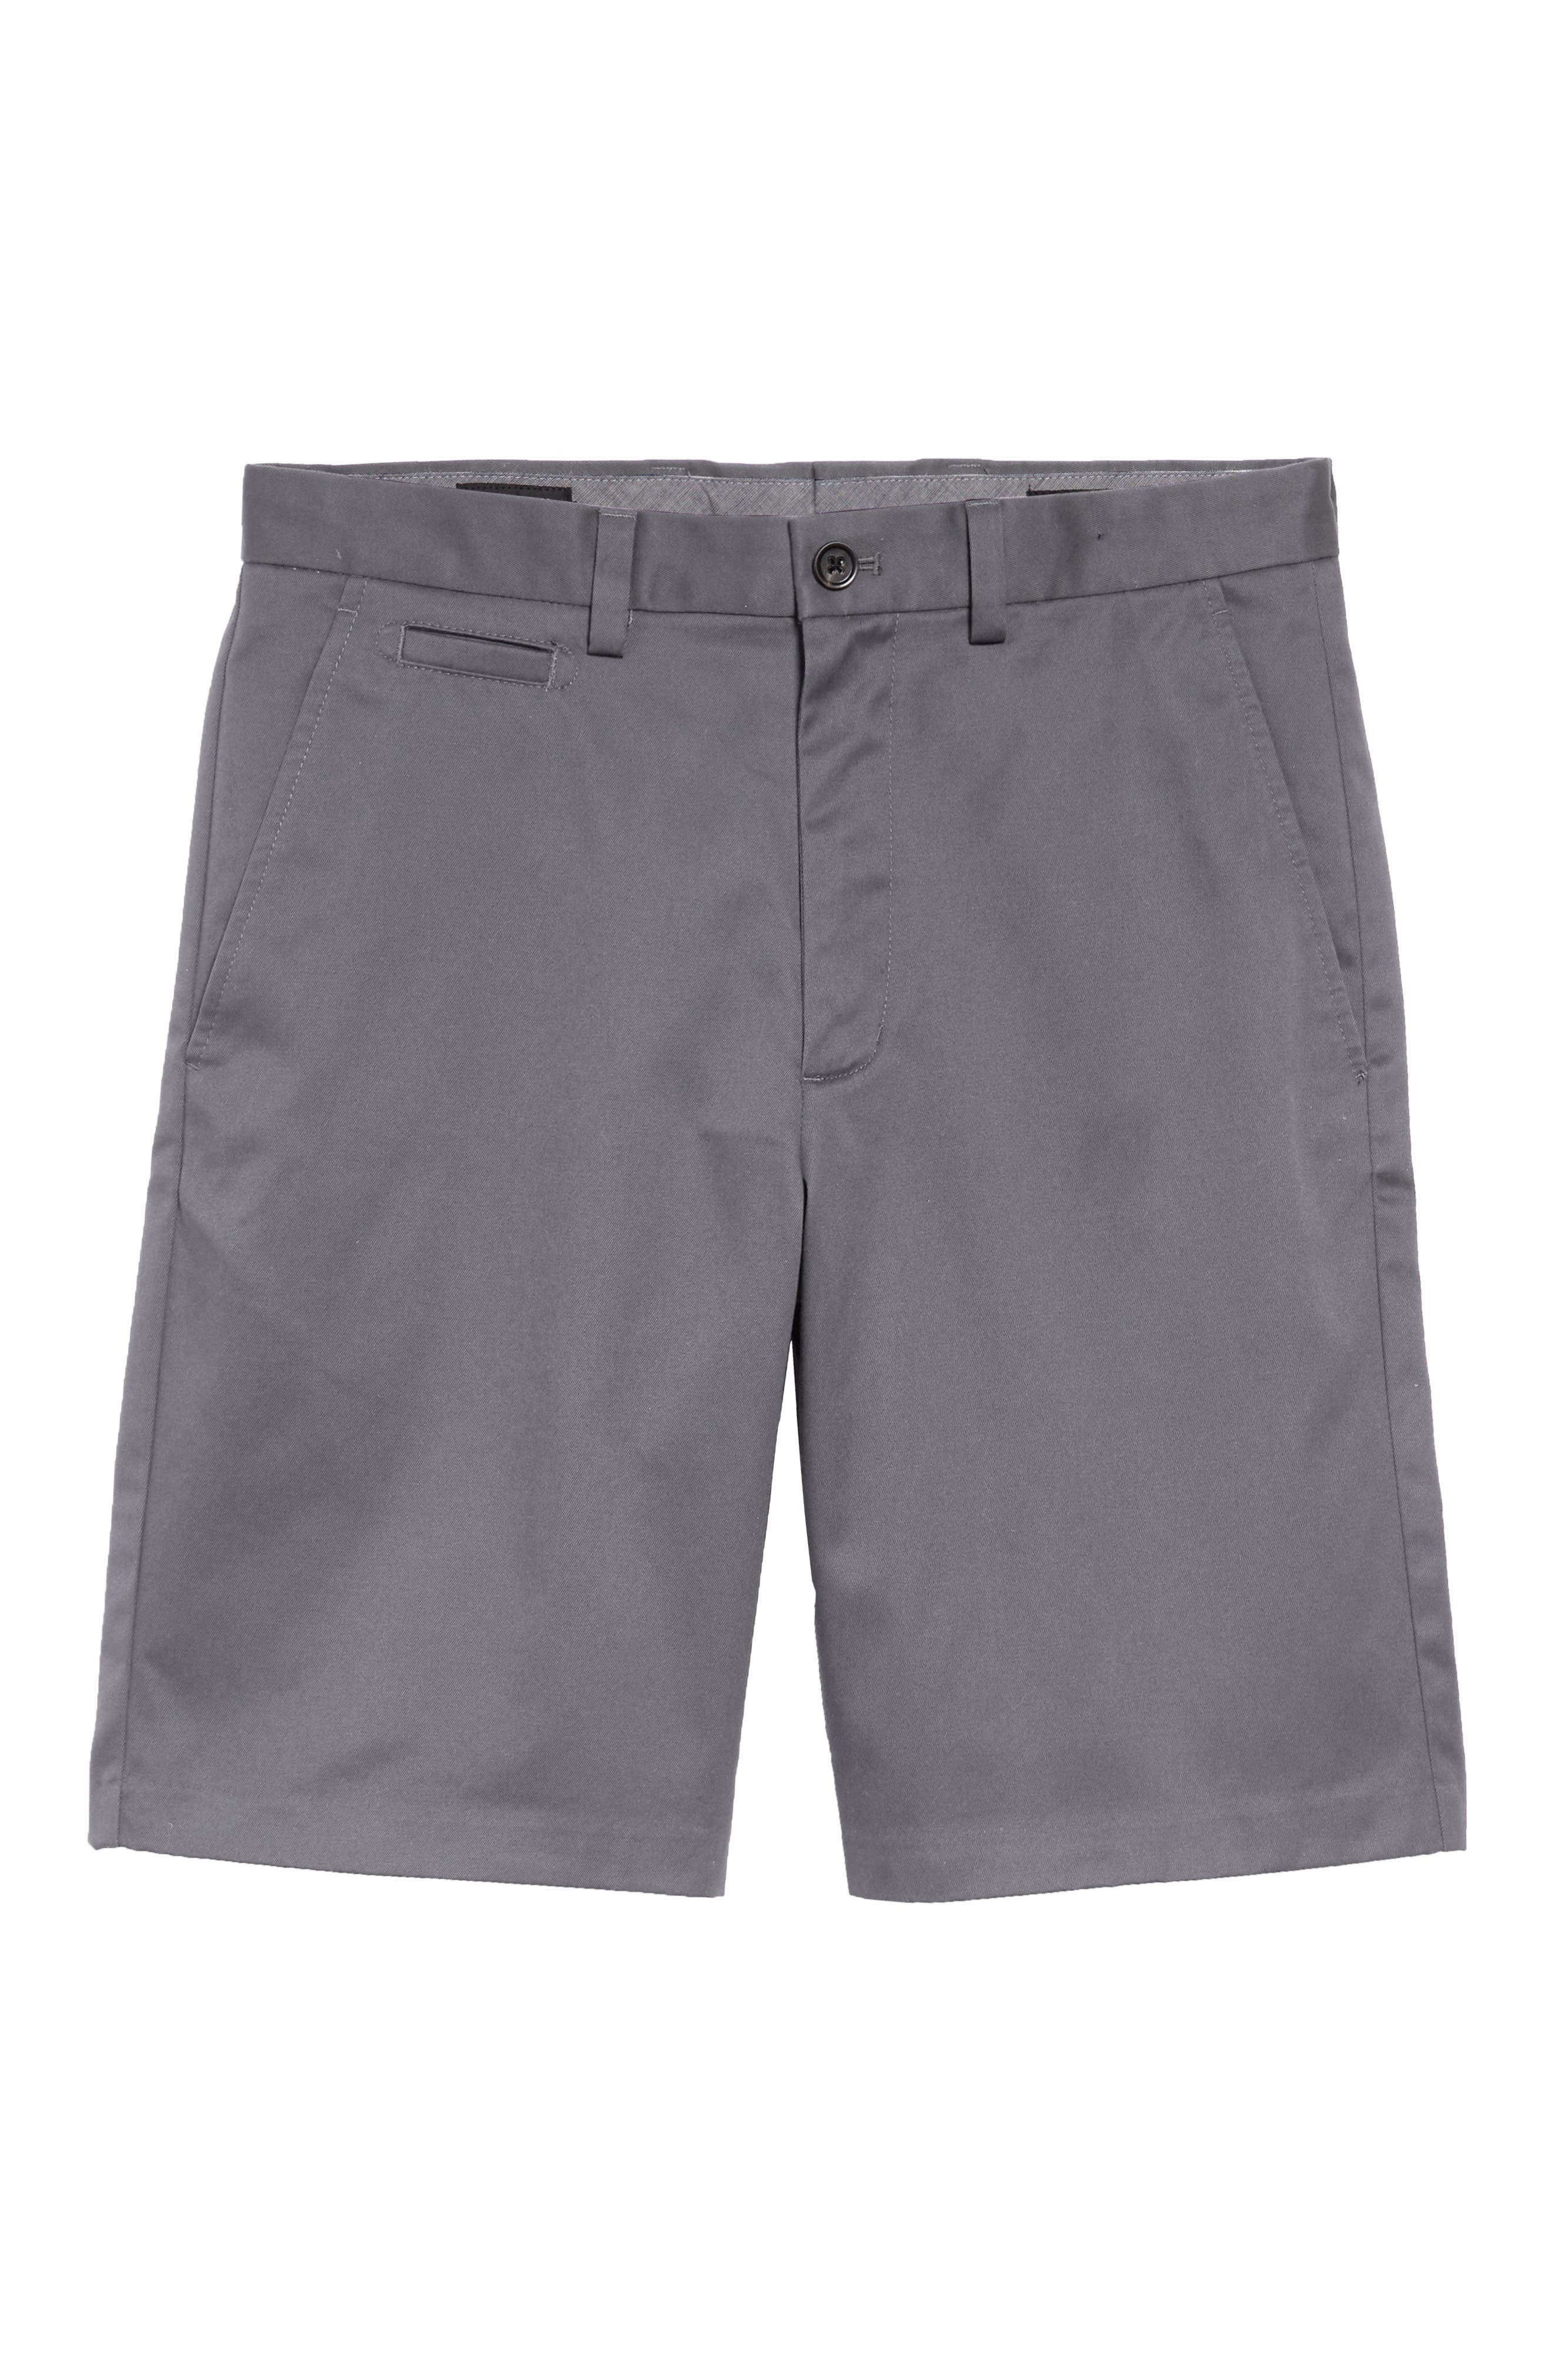 Smartcare<sup>™</sup> Flat Front Shorts,                             Alternate thumbnail 6, color,                             Grey Tornado